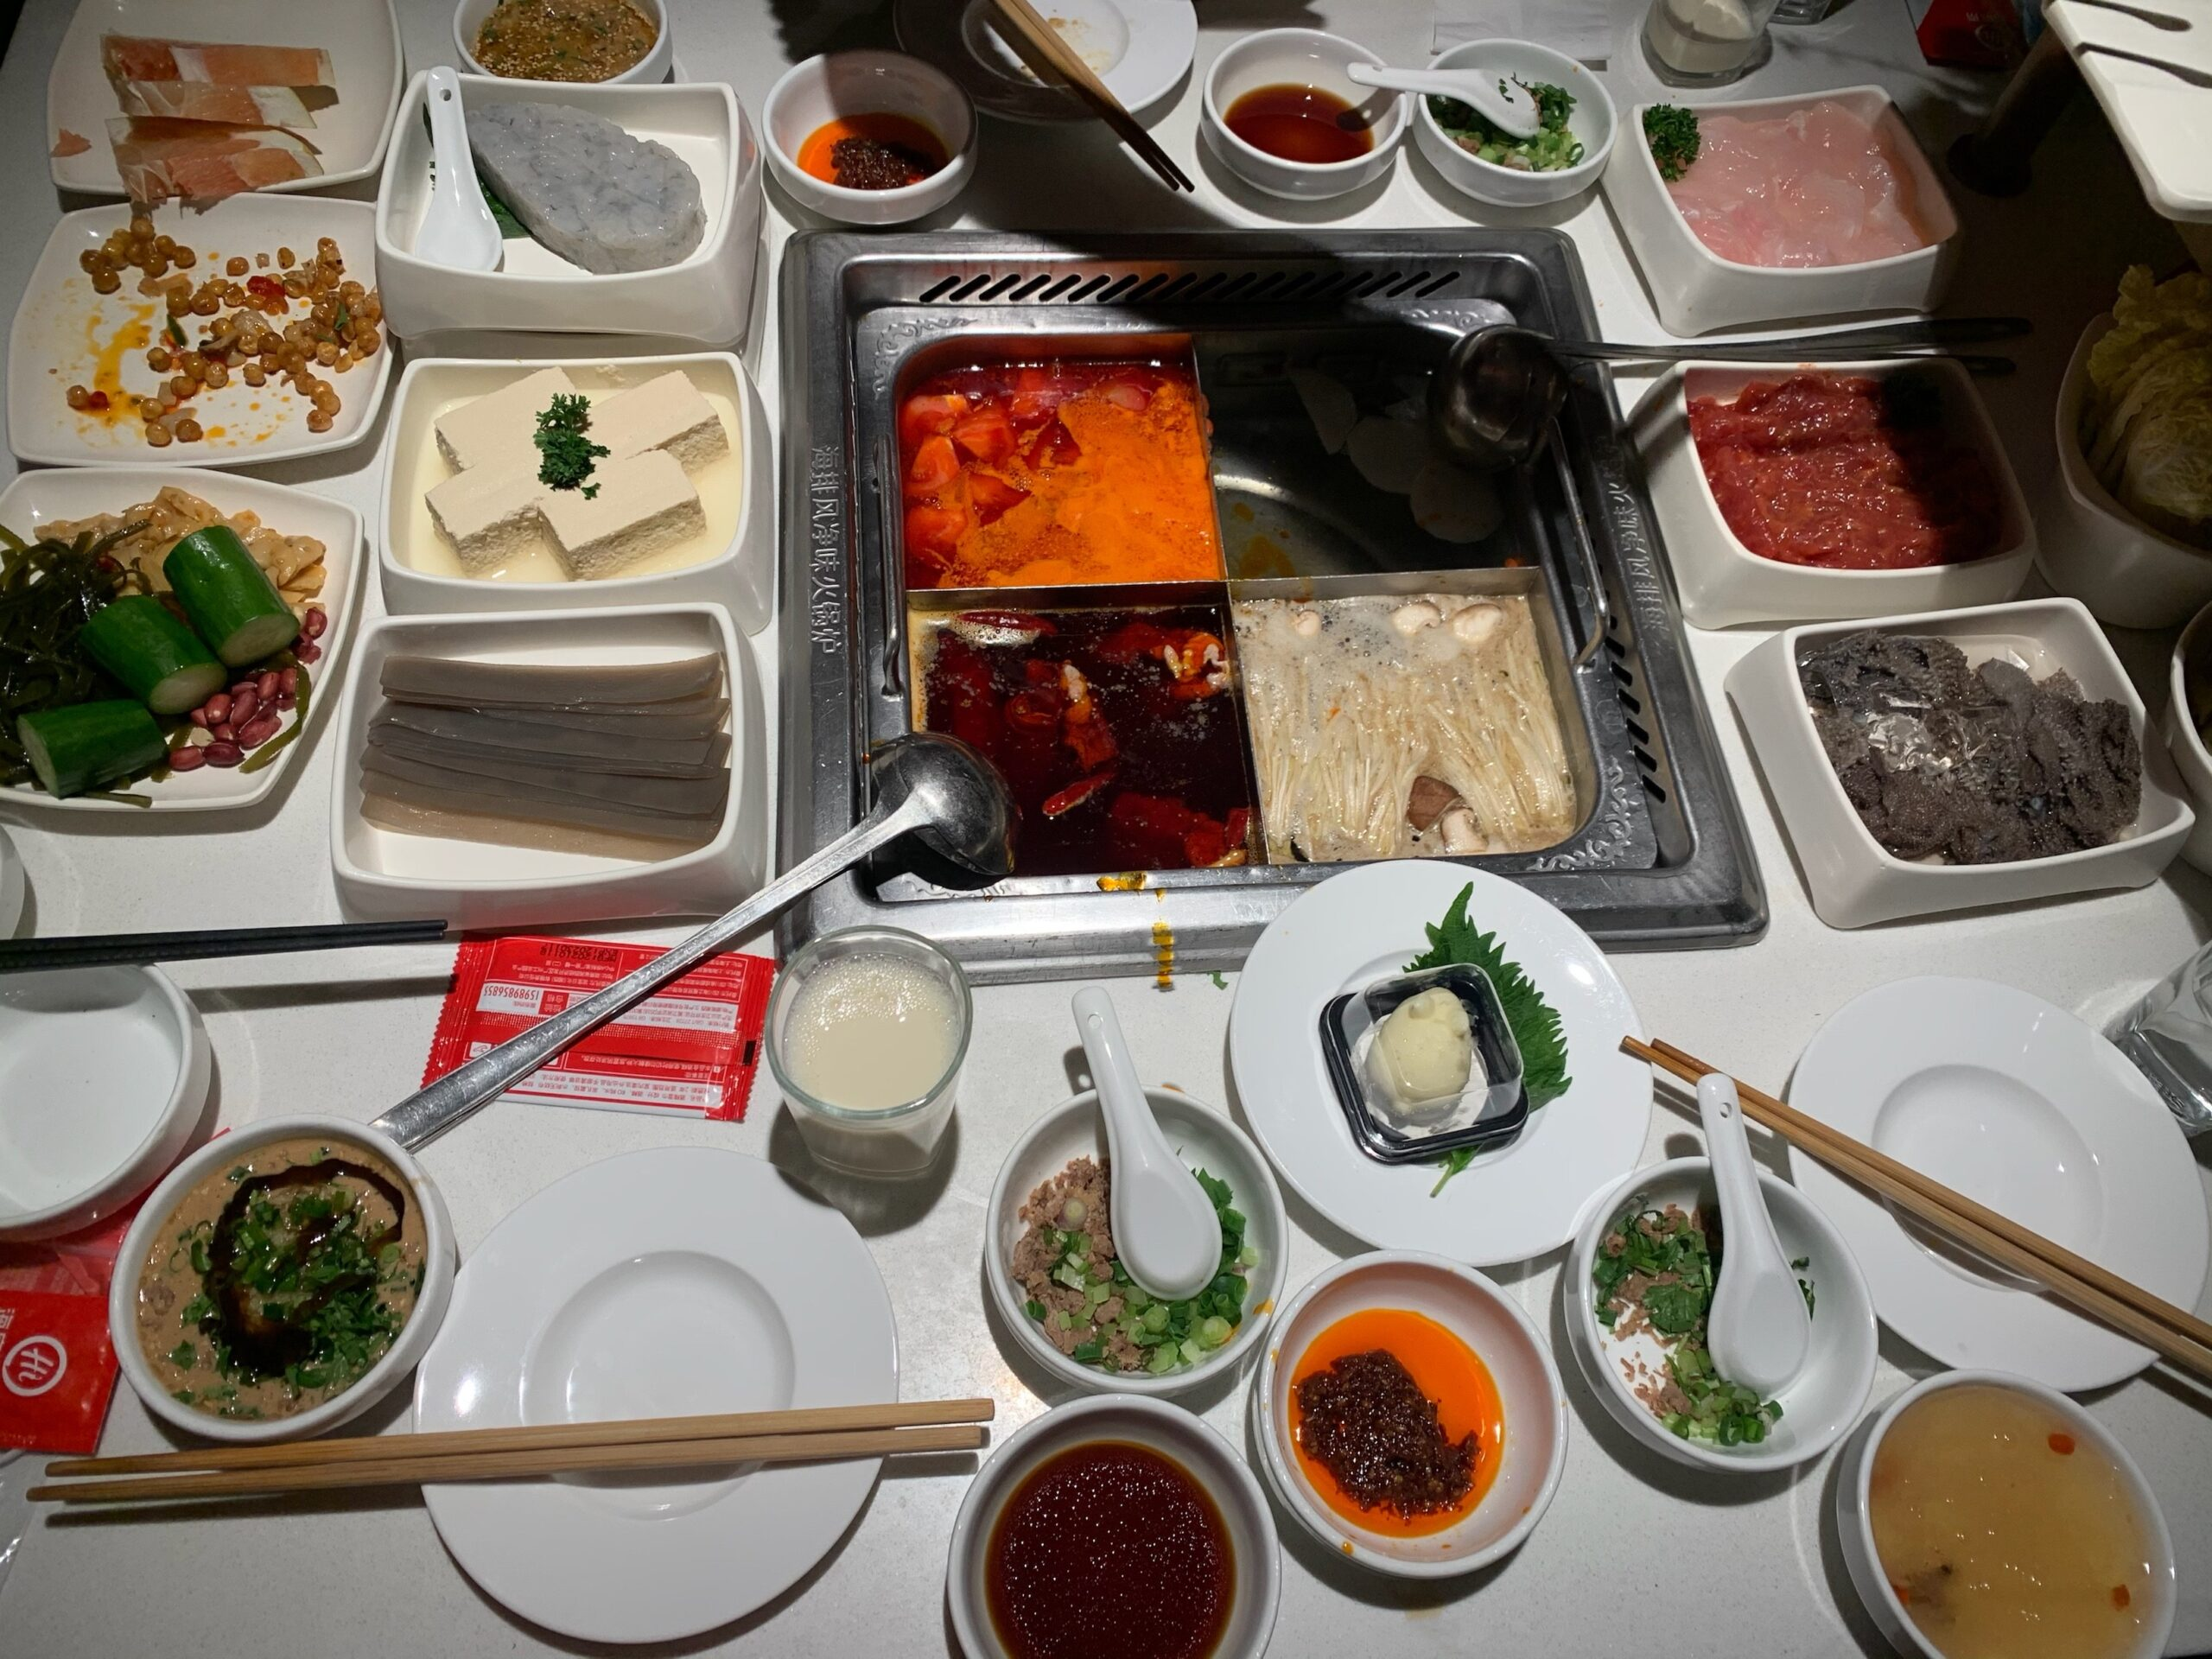 white table with several trays and plates of various foods